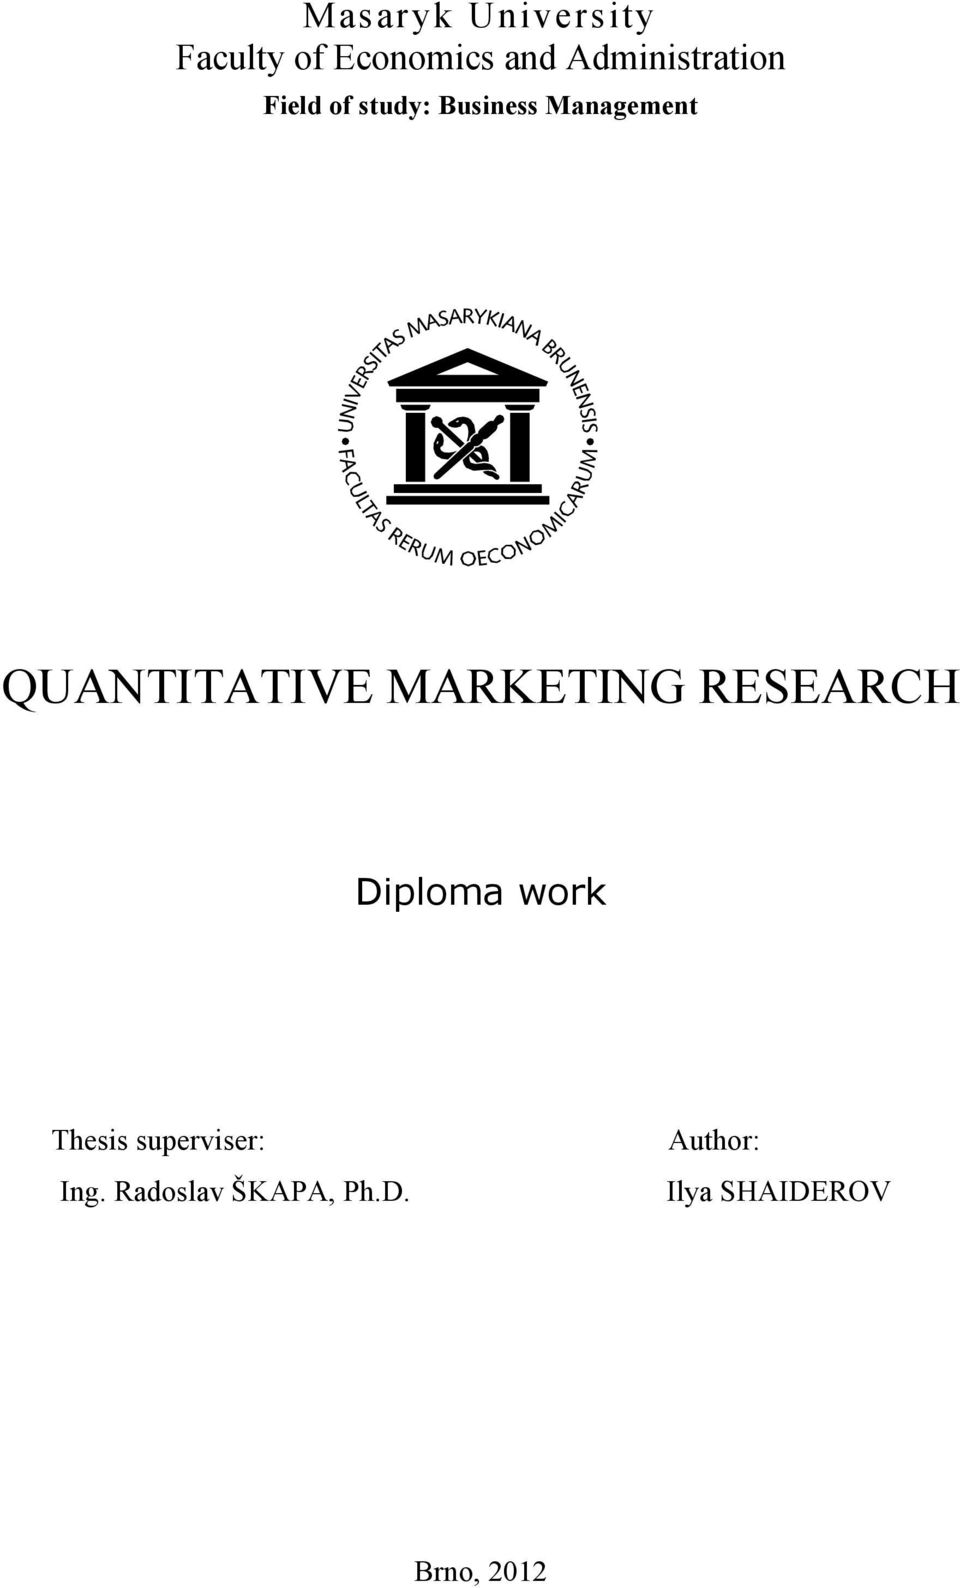 MARKETING RESEARCH Dipla wrk Thsis sprvisr: